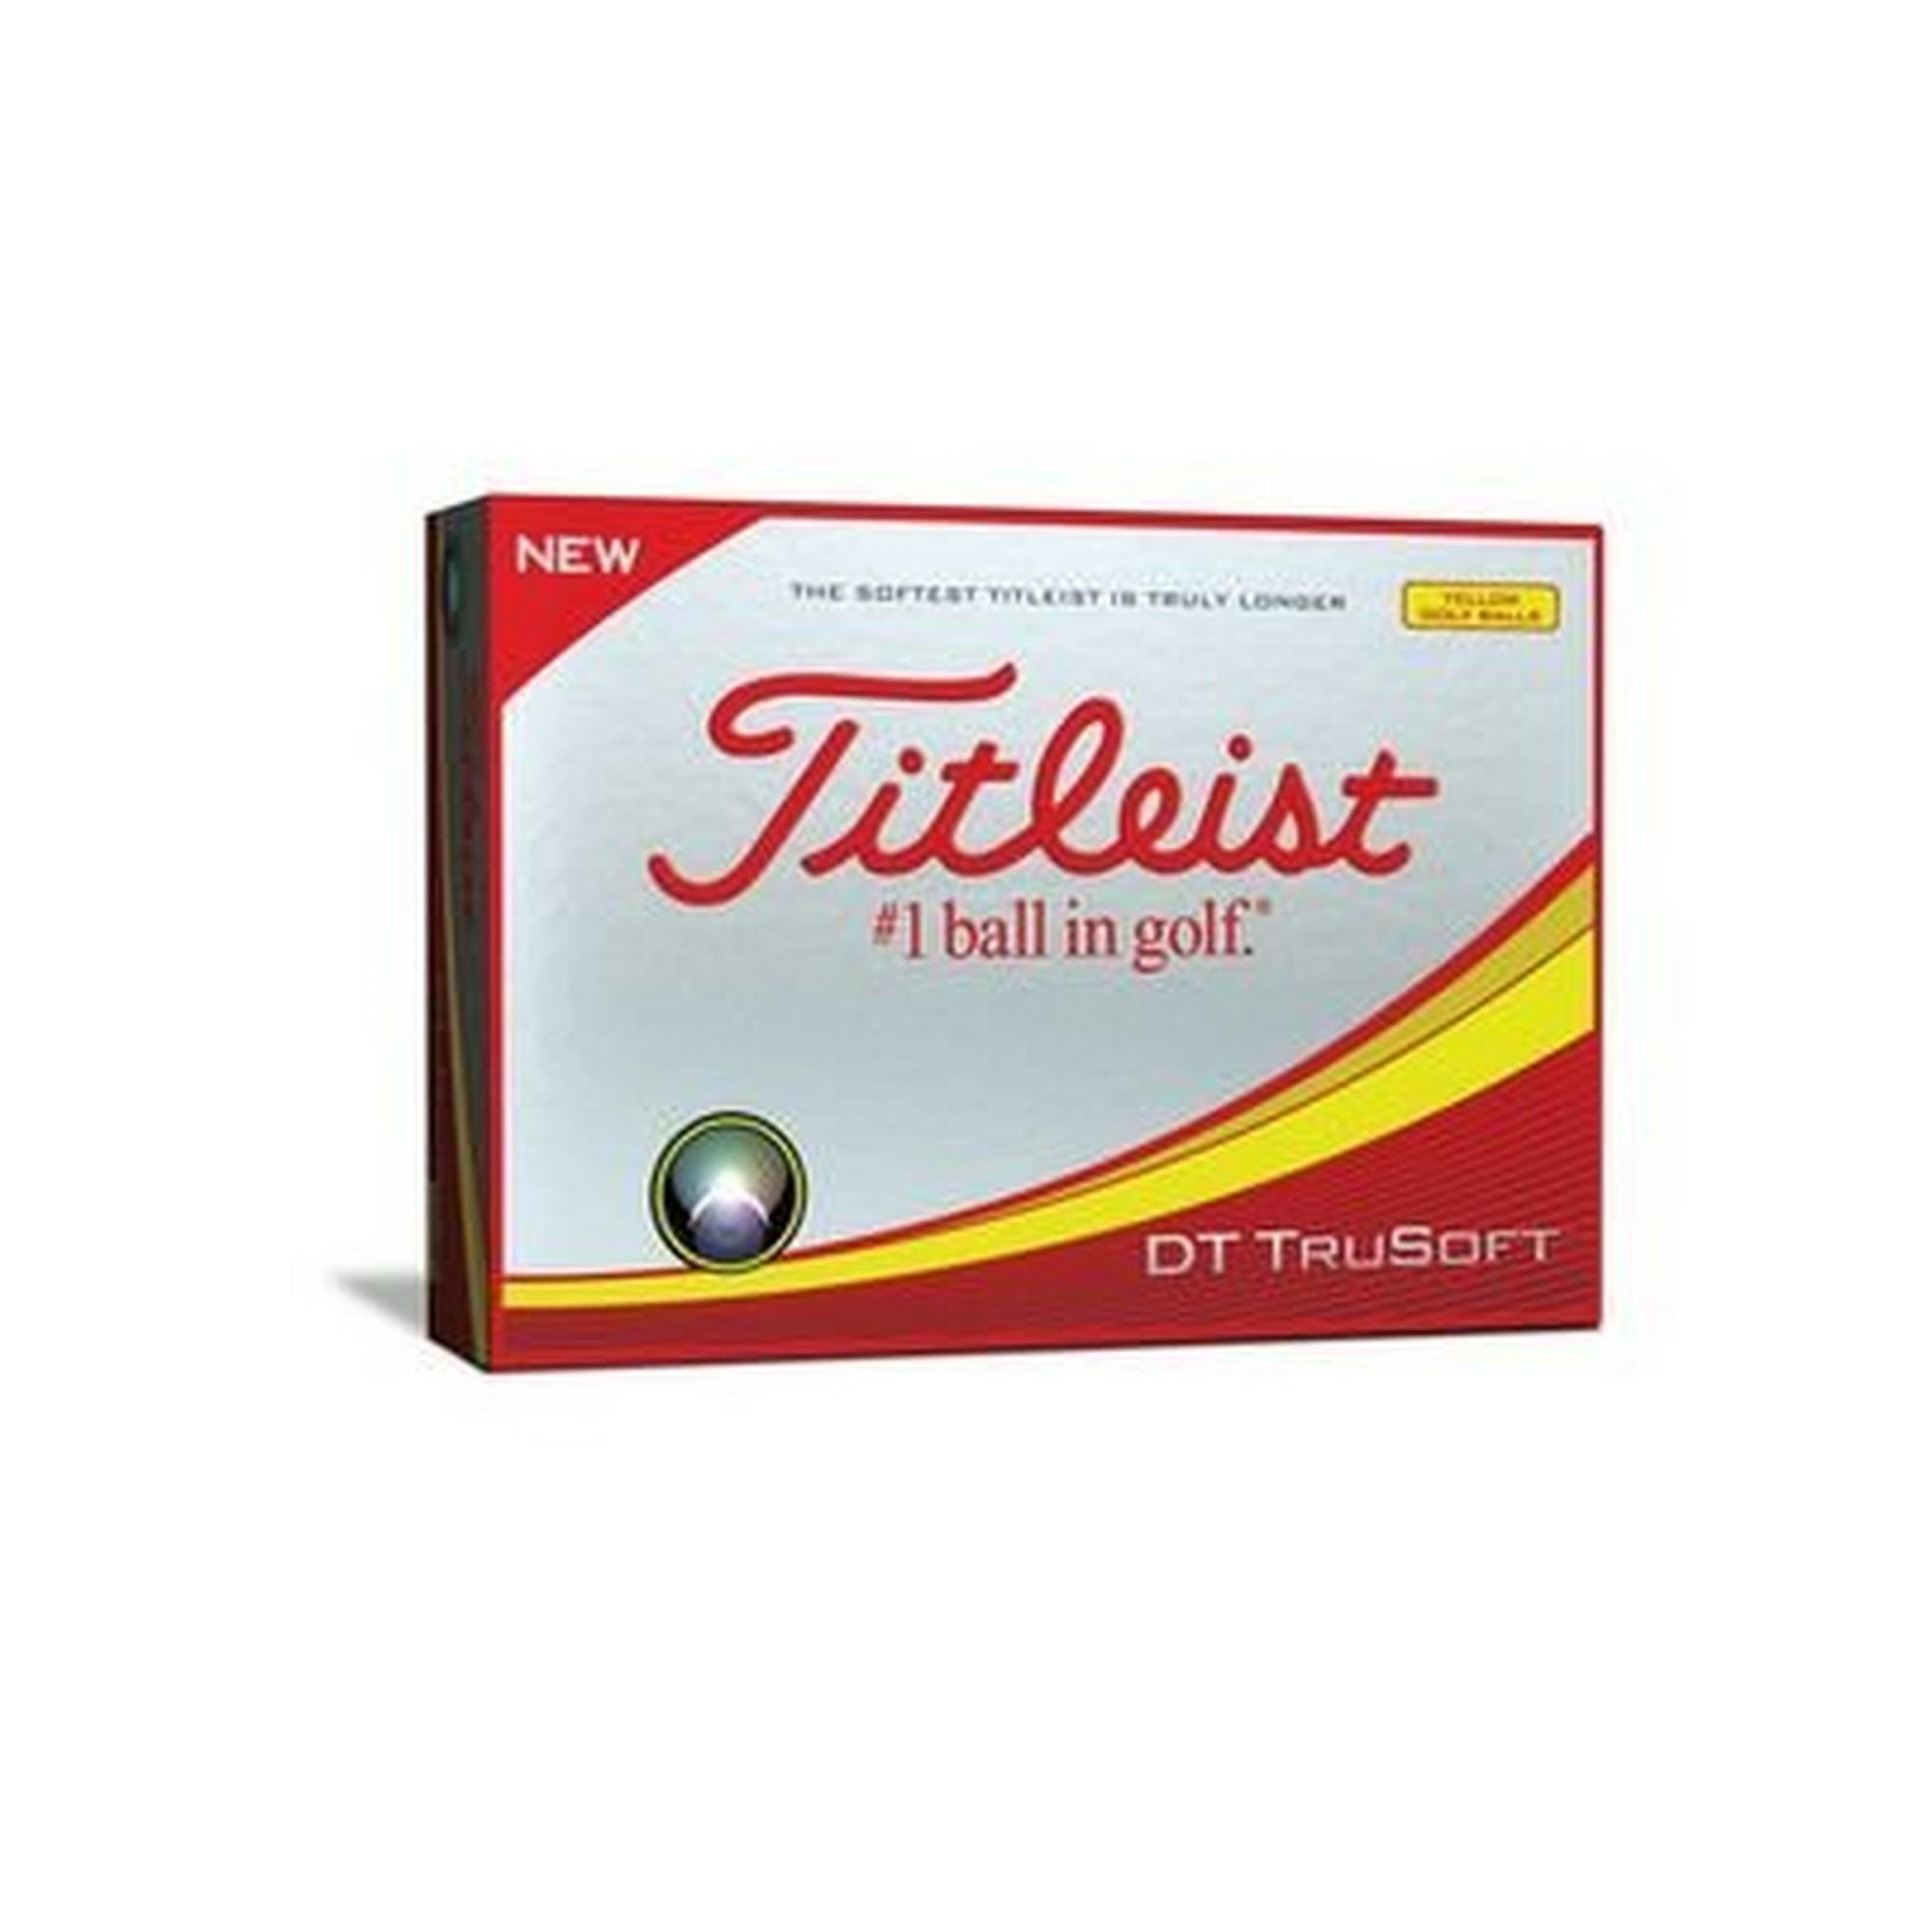 DT TruSoft Personalized Golf Balls - Yellow